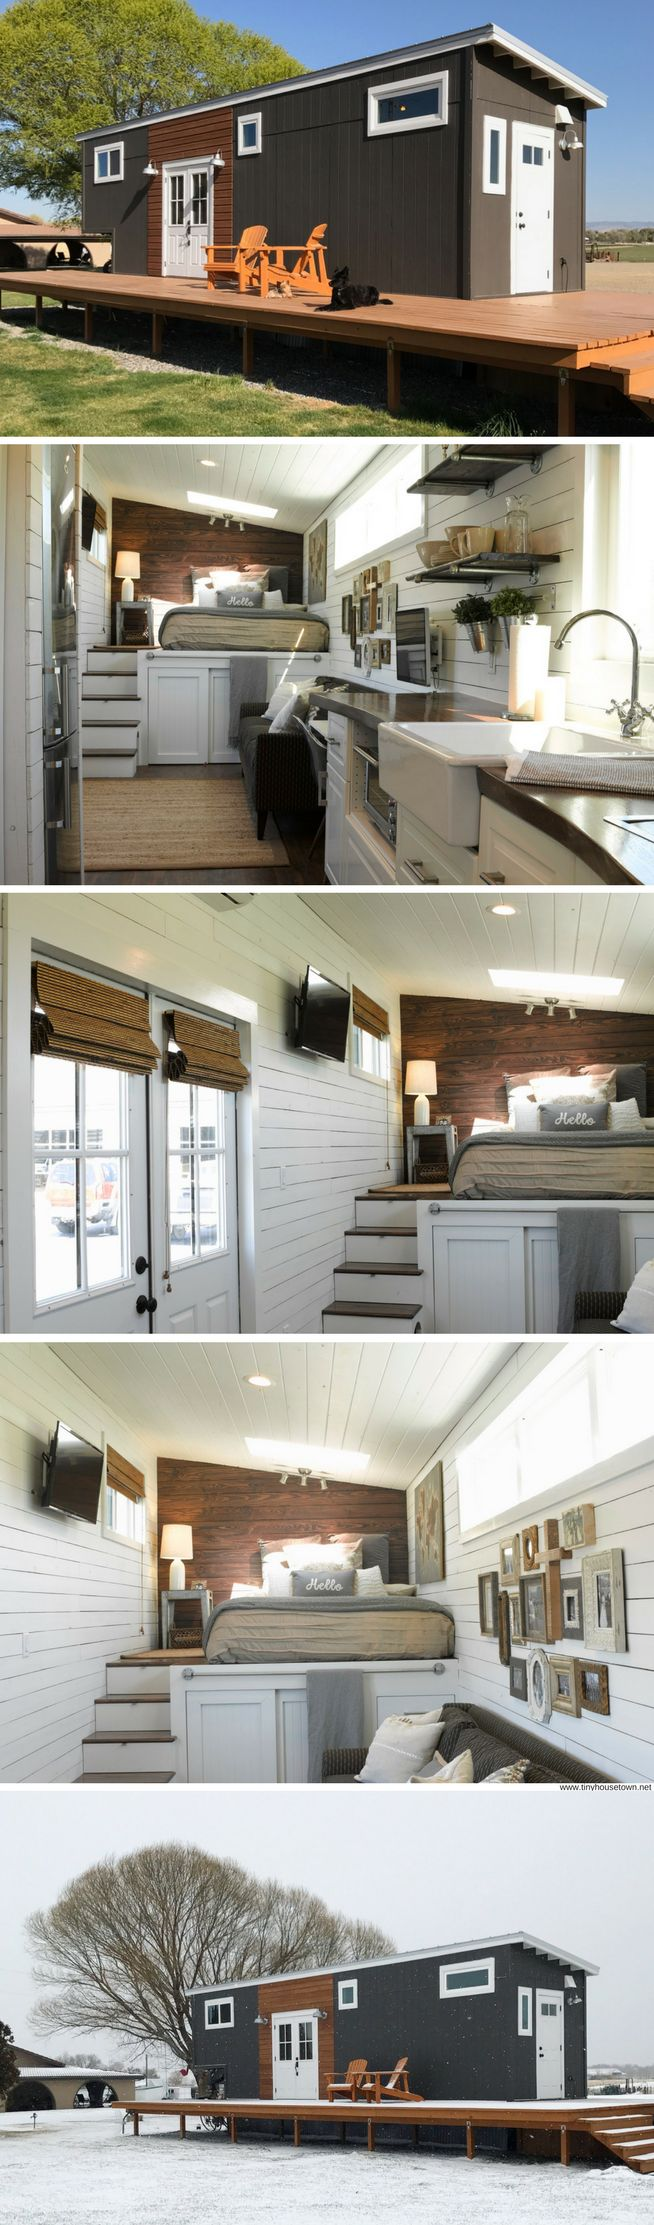 Shipping container homes living for the future earth911 com - Best 25 Building A Tiny House Ideas On Pinterest Inside Tiny Houses Mini Homes And Tiny House Bedroom